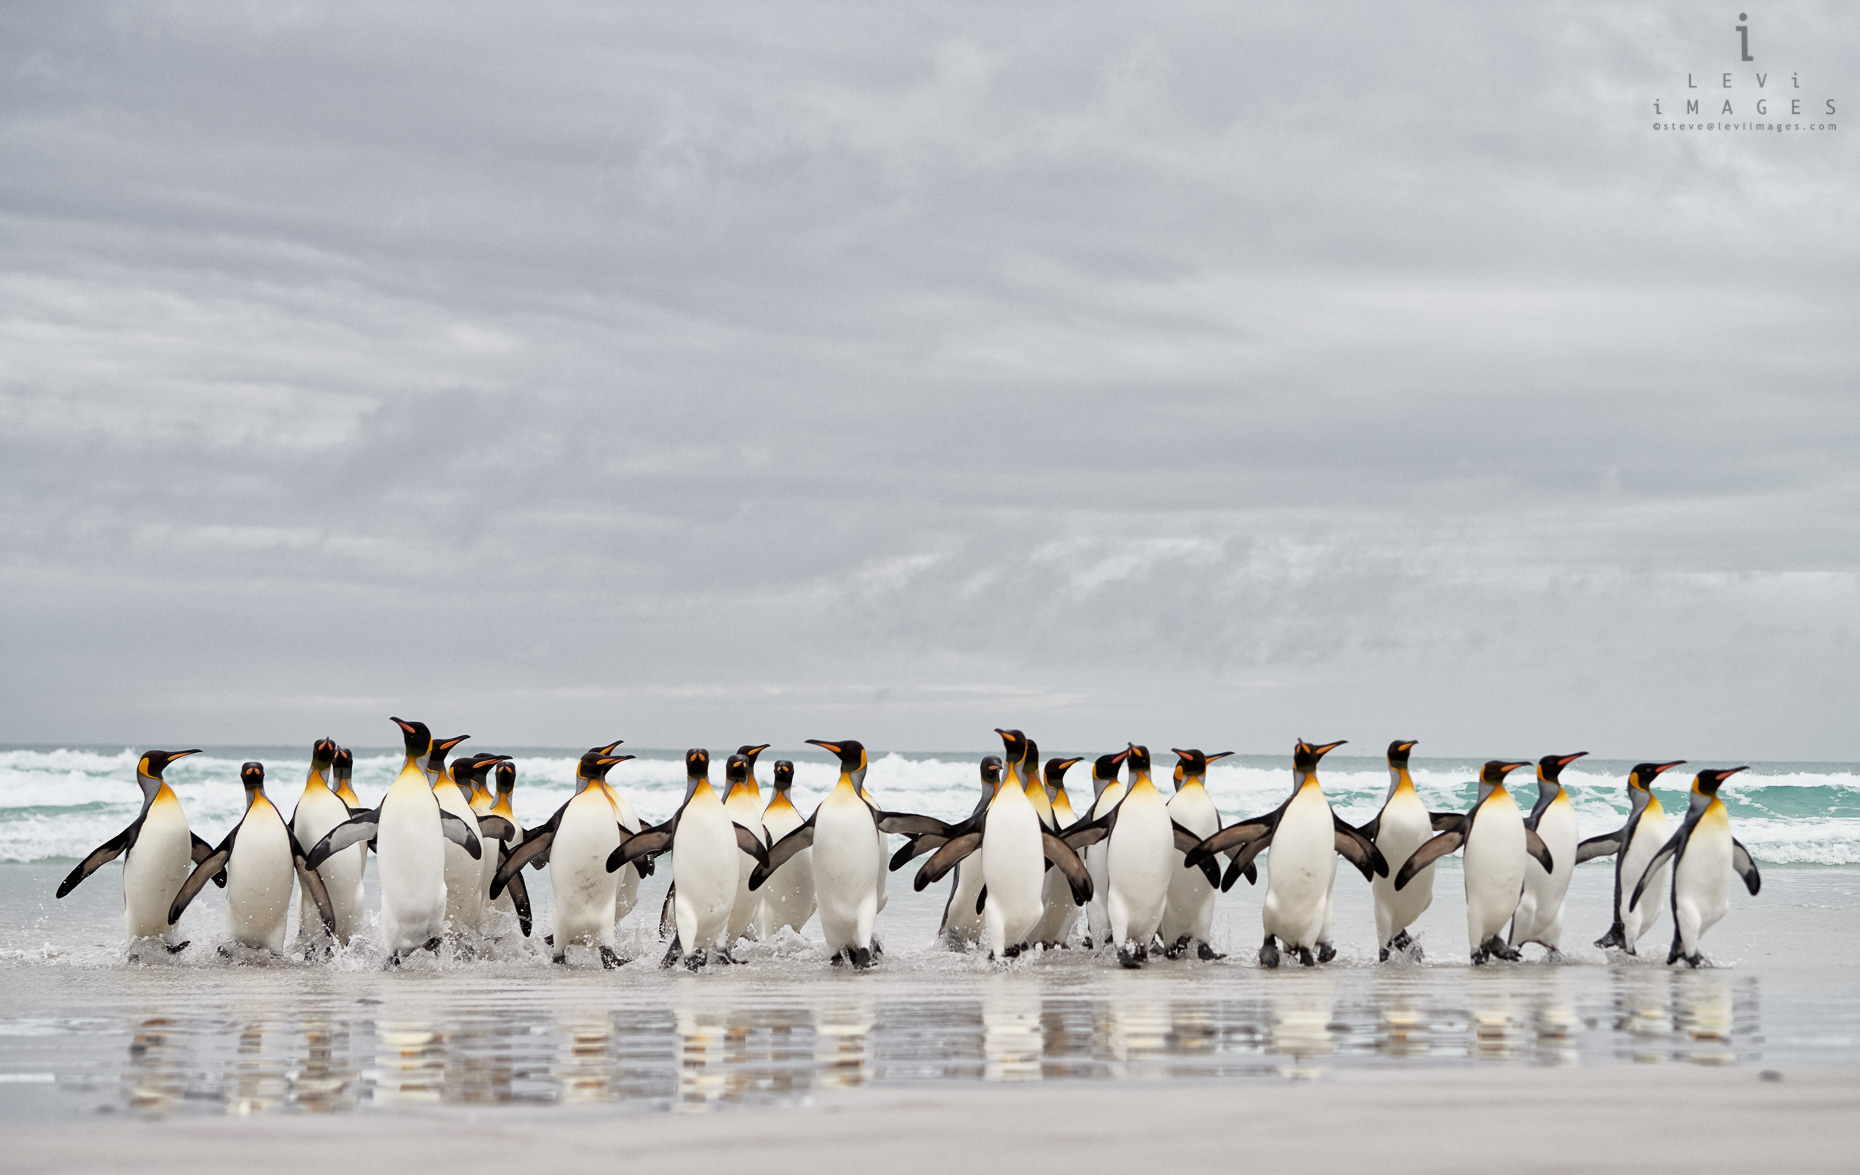 King penguins (Aptenodytes patagonicus) returning from sea with beach reflection. Volunteer Point, Falkland Islands